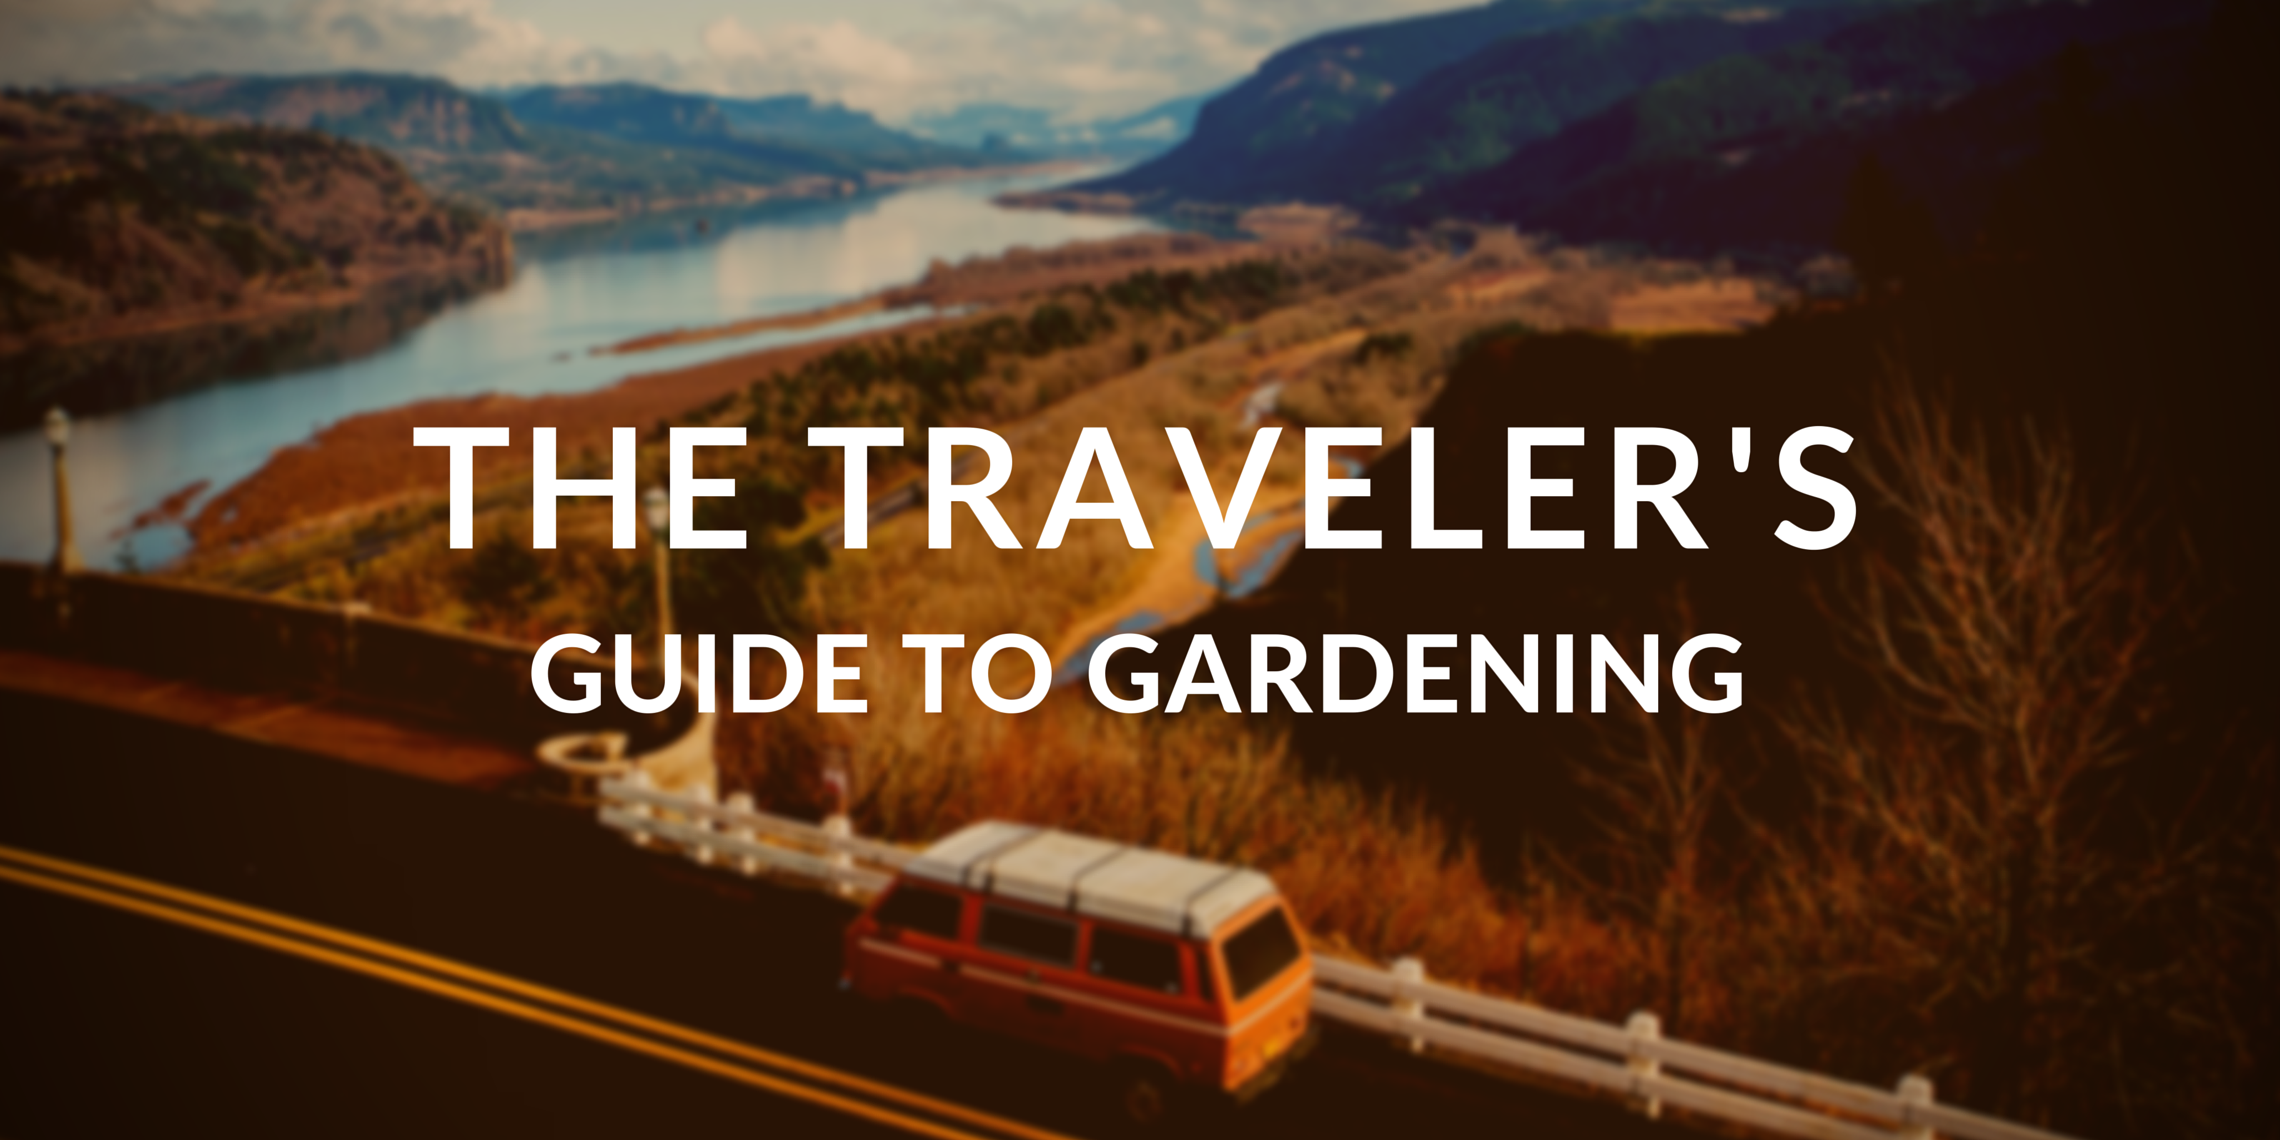 The Traveler's Guide to Gardening